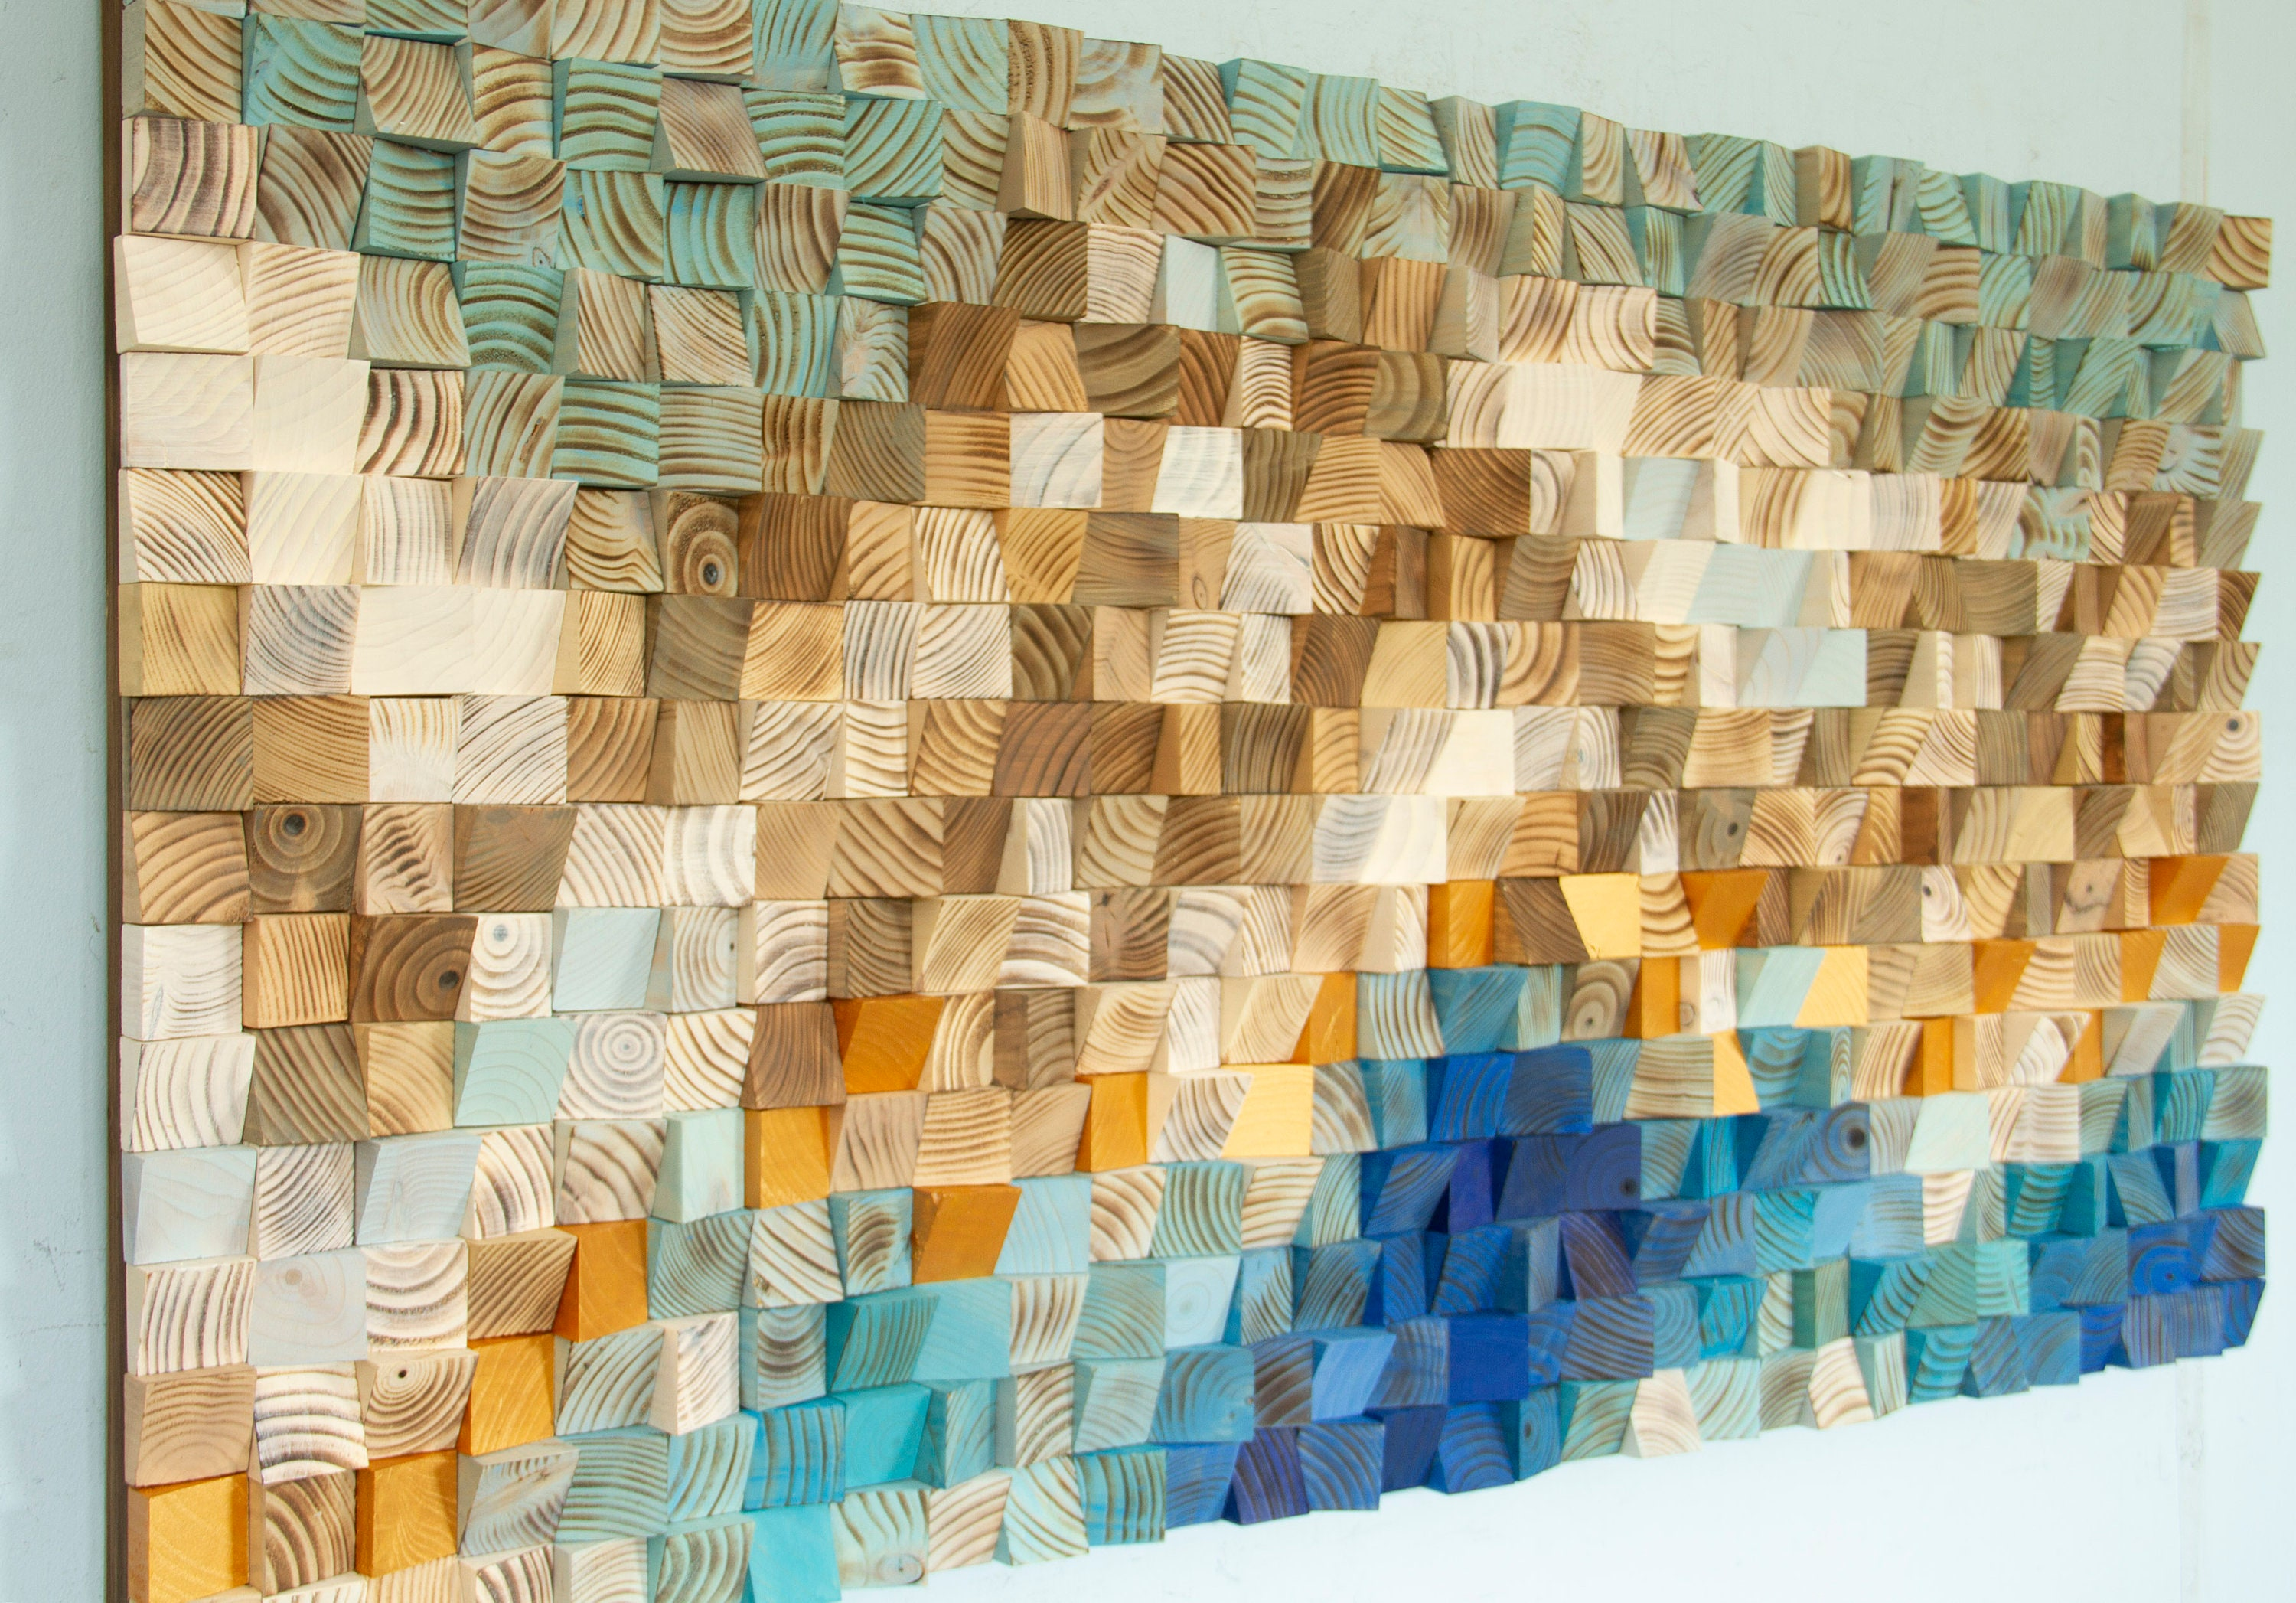 Mountain Gold, Wood Wall Art - Alps Landscape painting, 3D